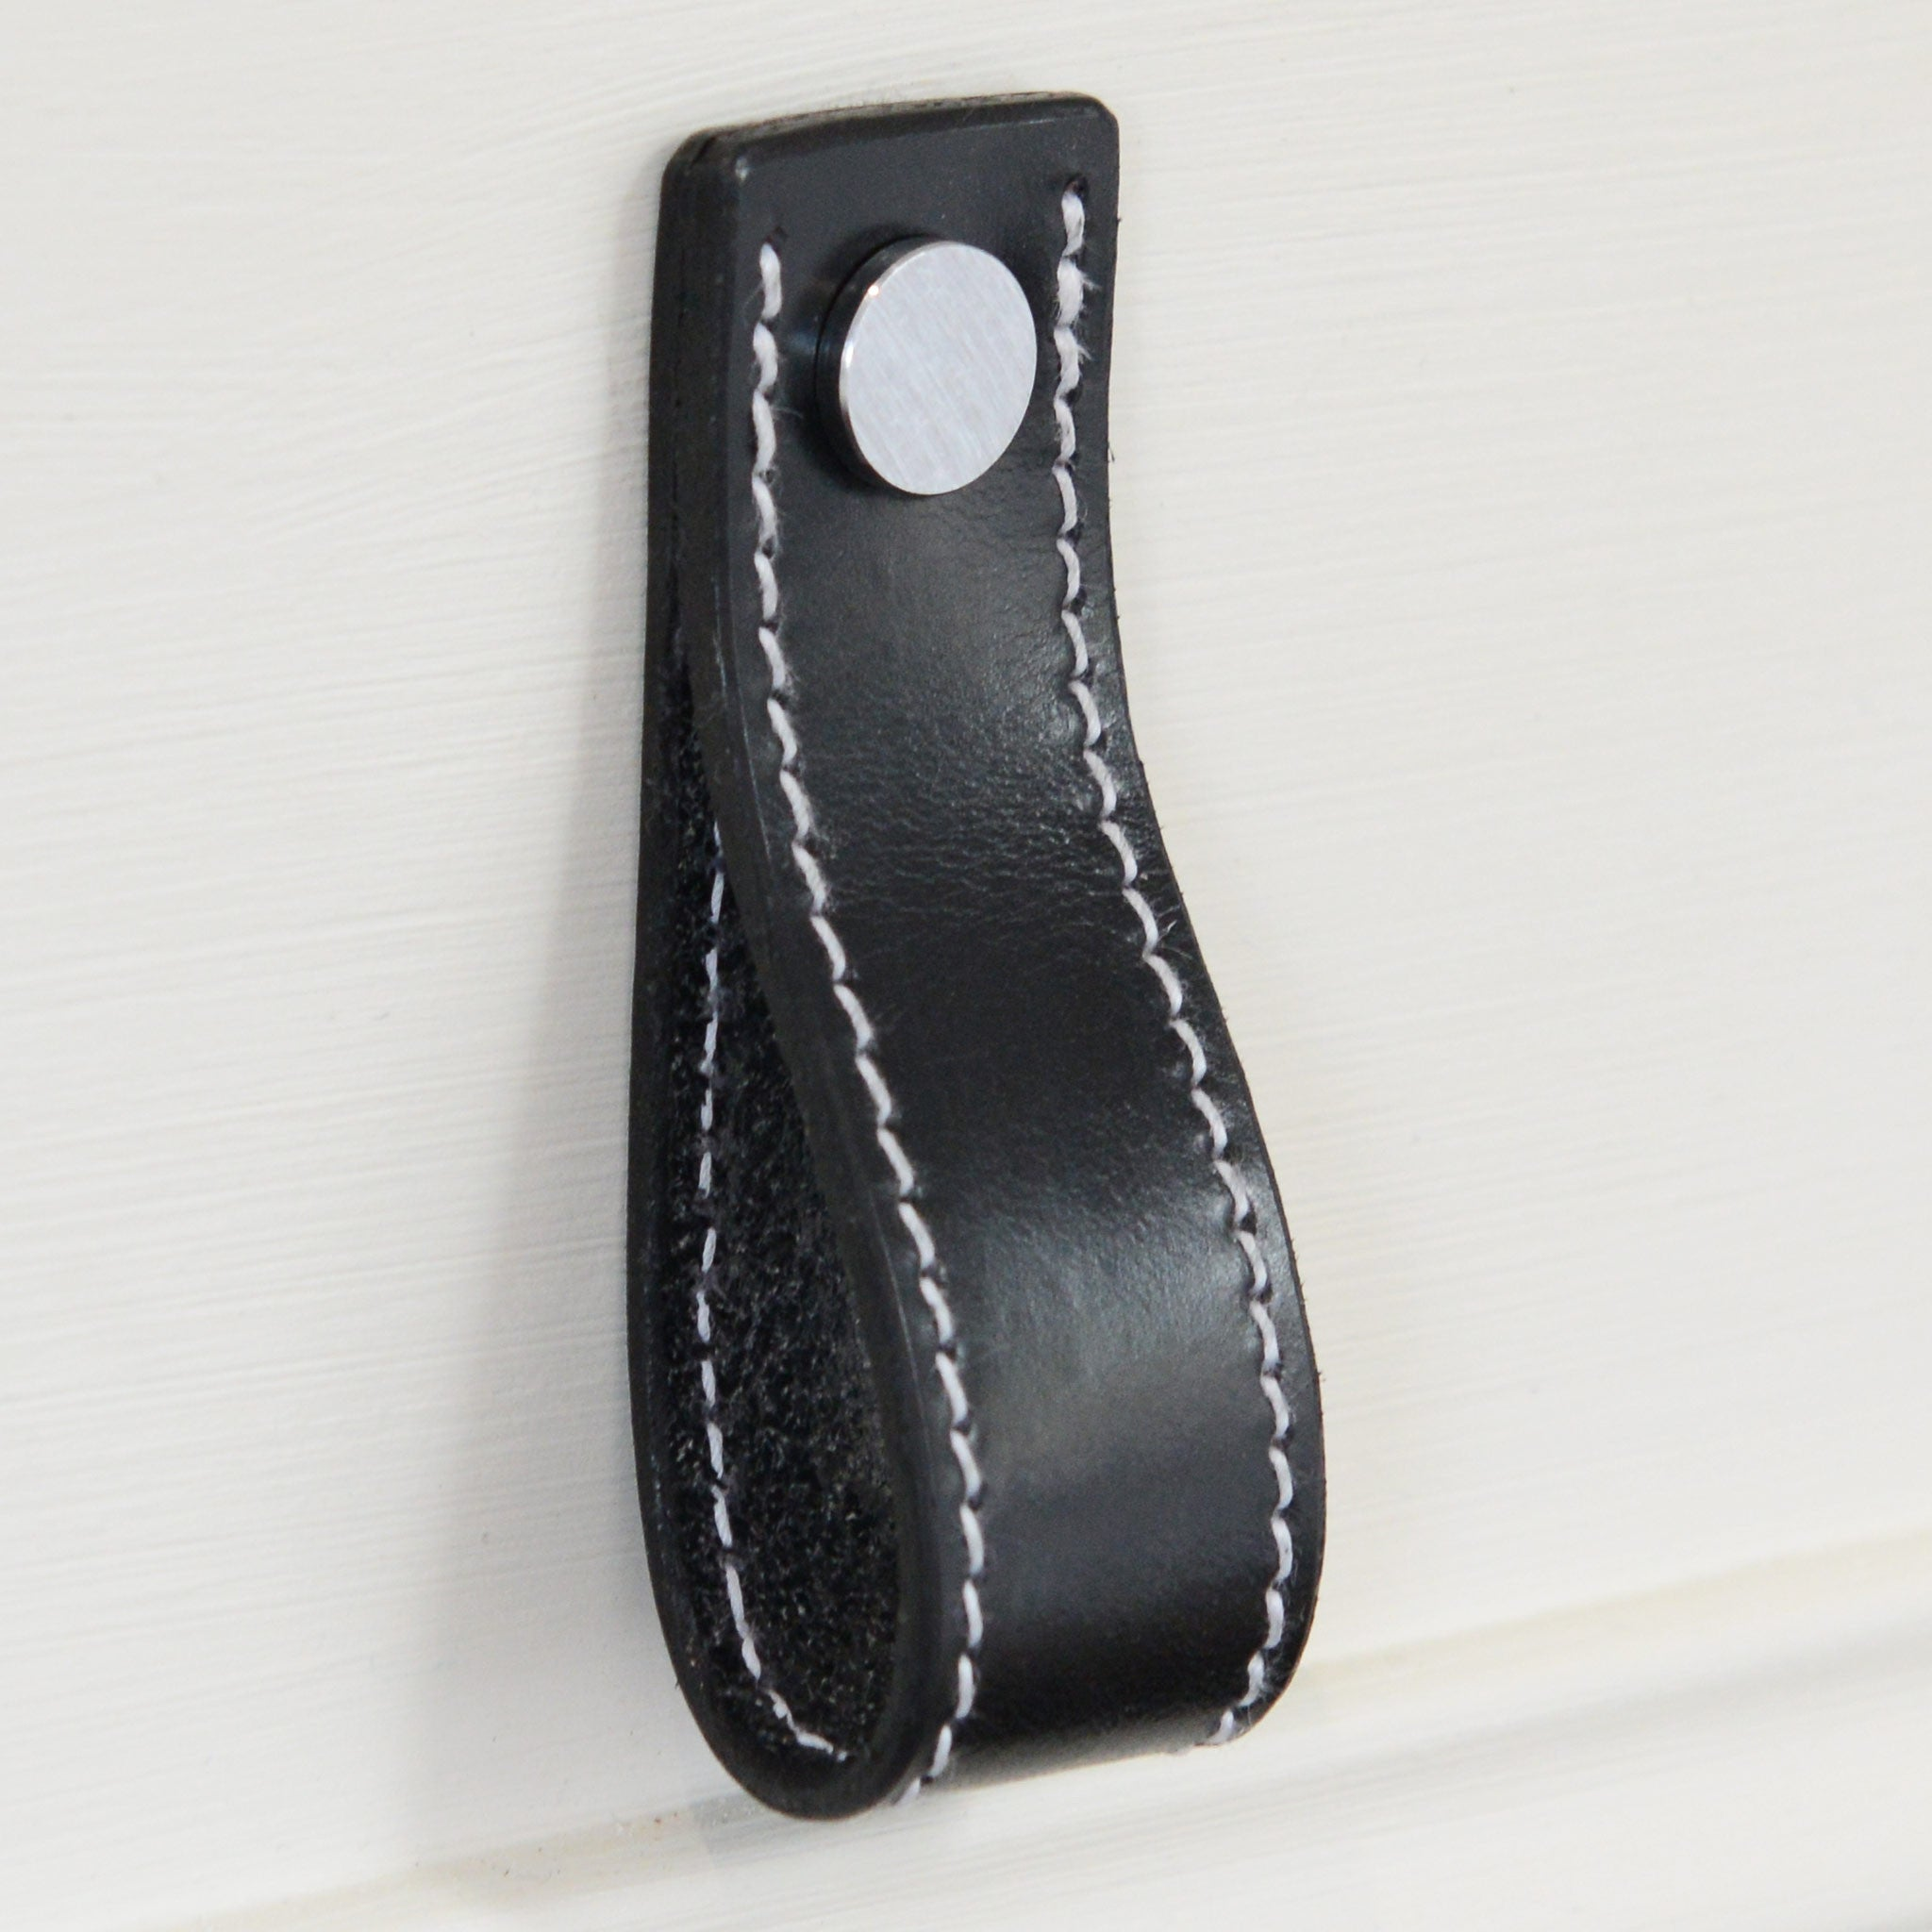 Lourdais Folded Black Leather Door Pull with Satin Chrome Fixings